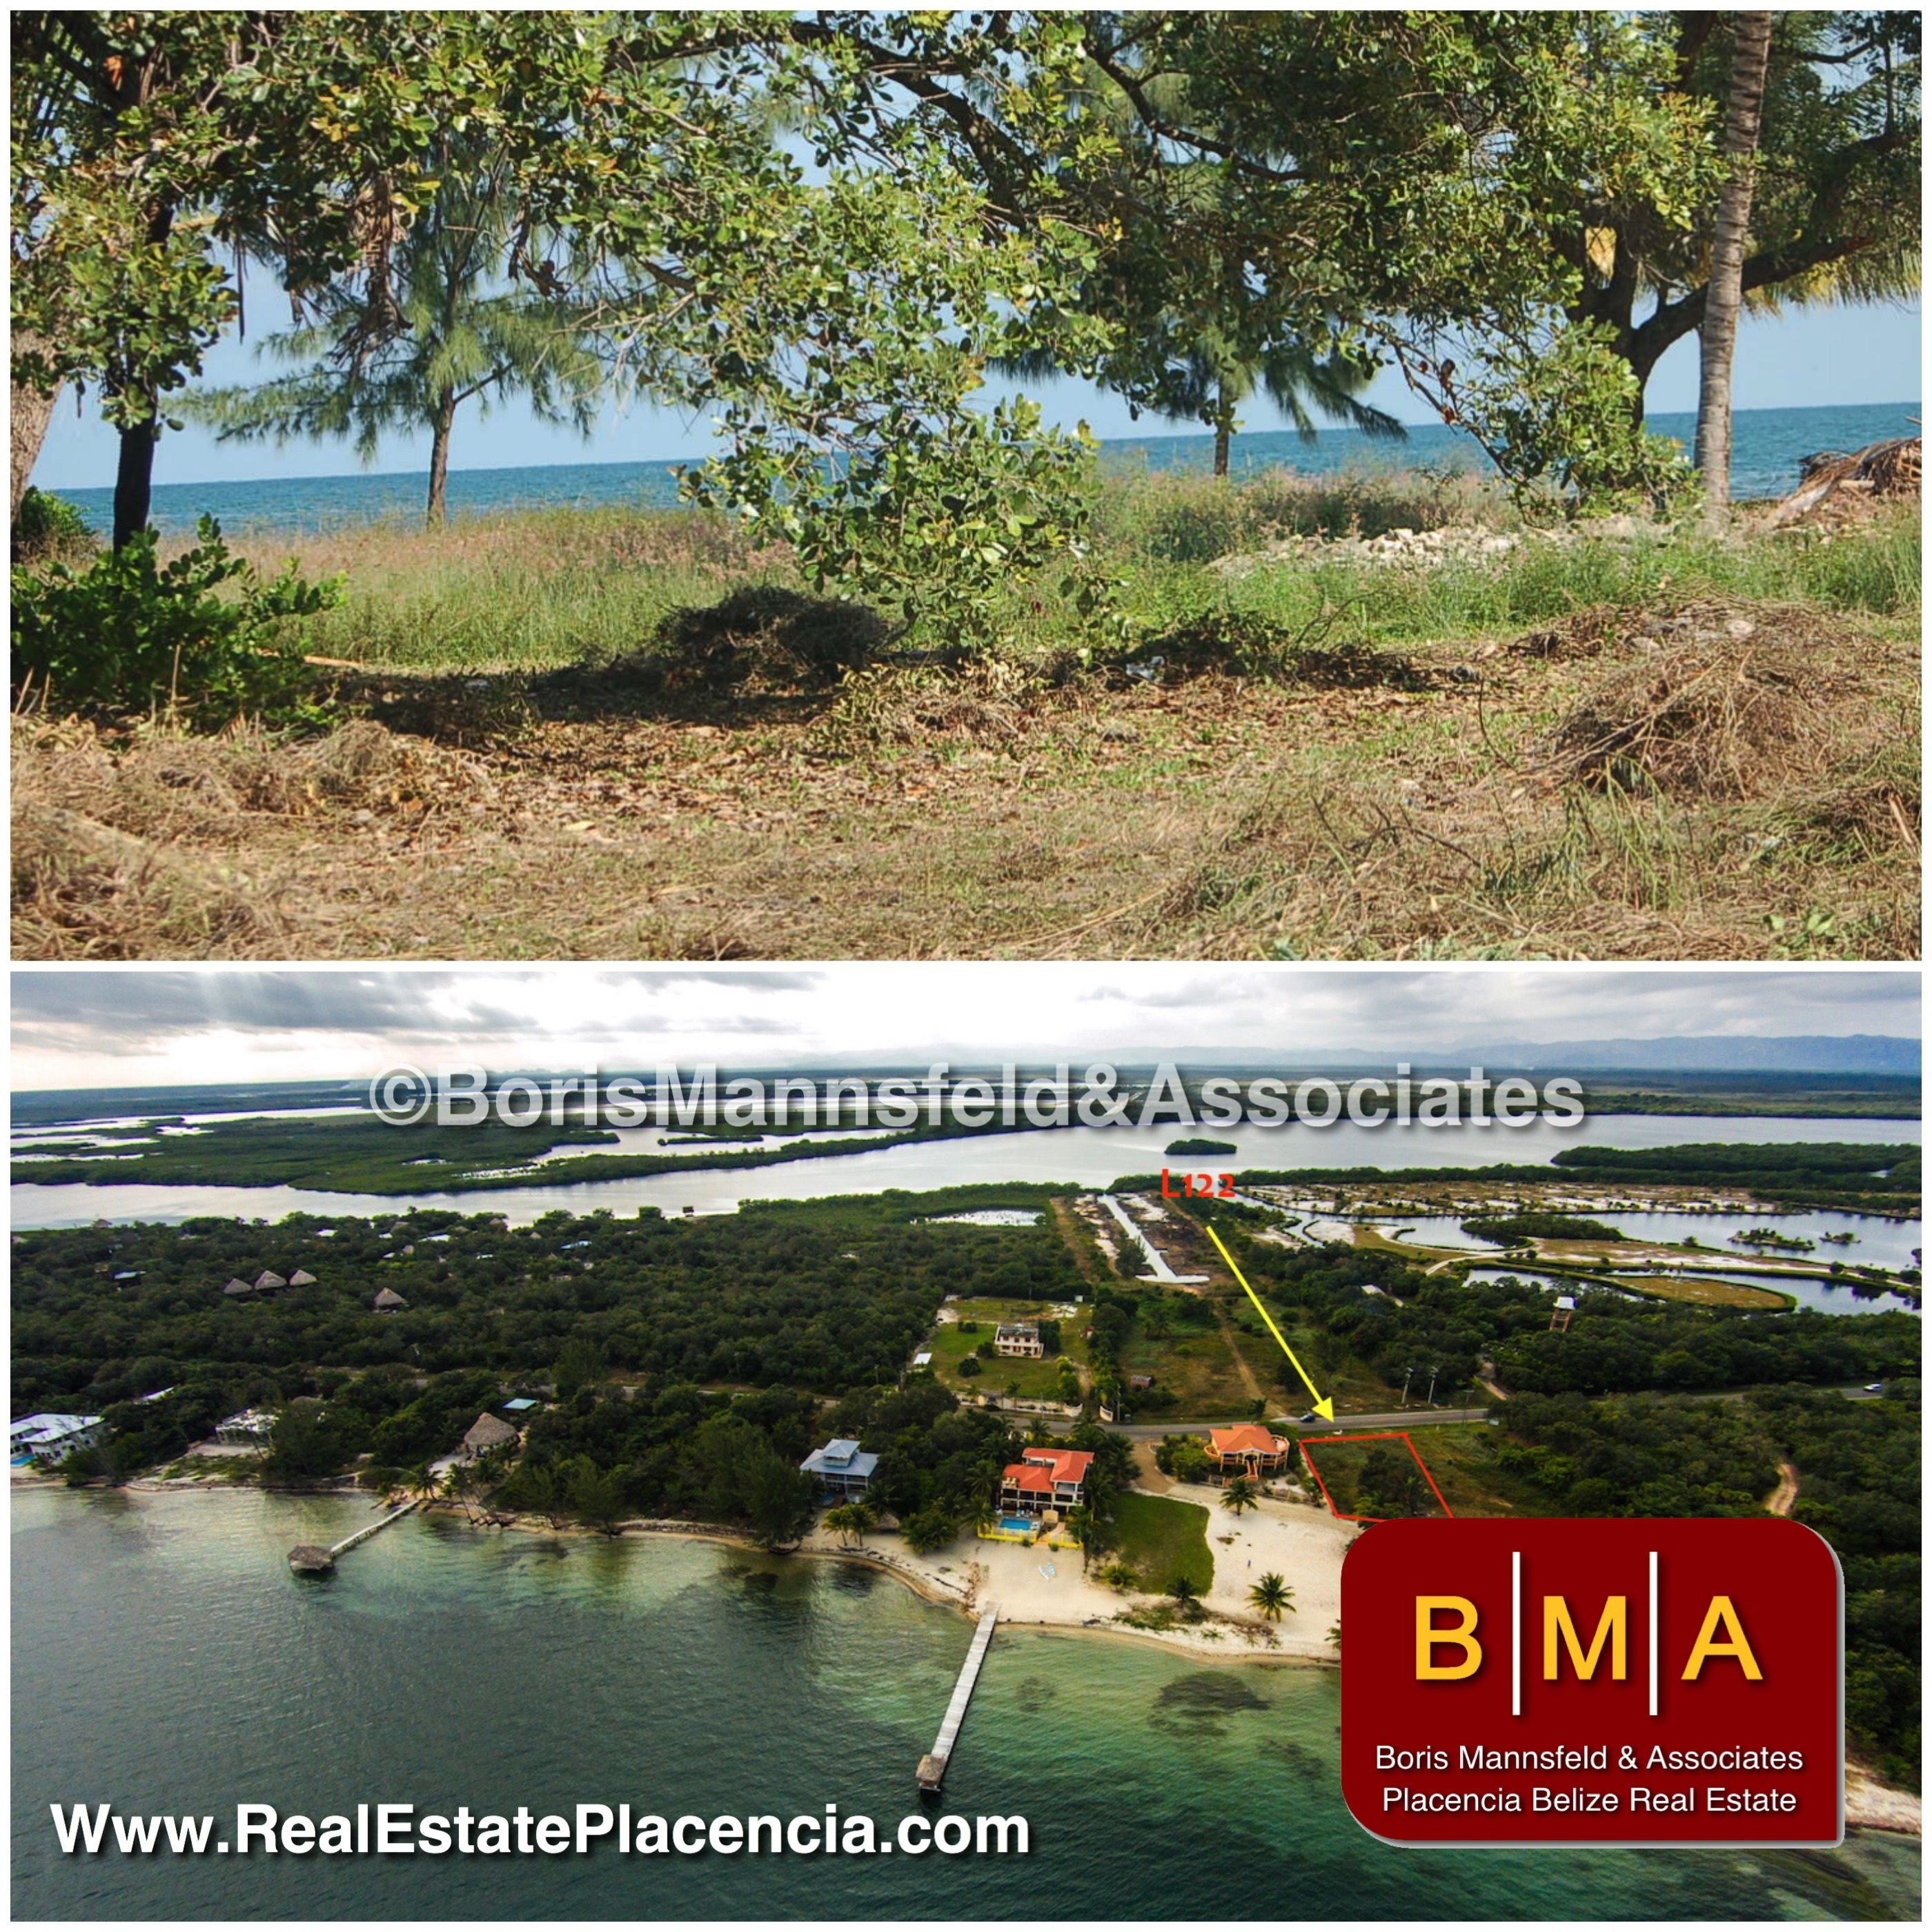 Single family lot in ideal location in Placencia Belize